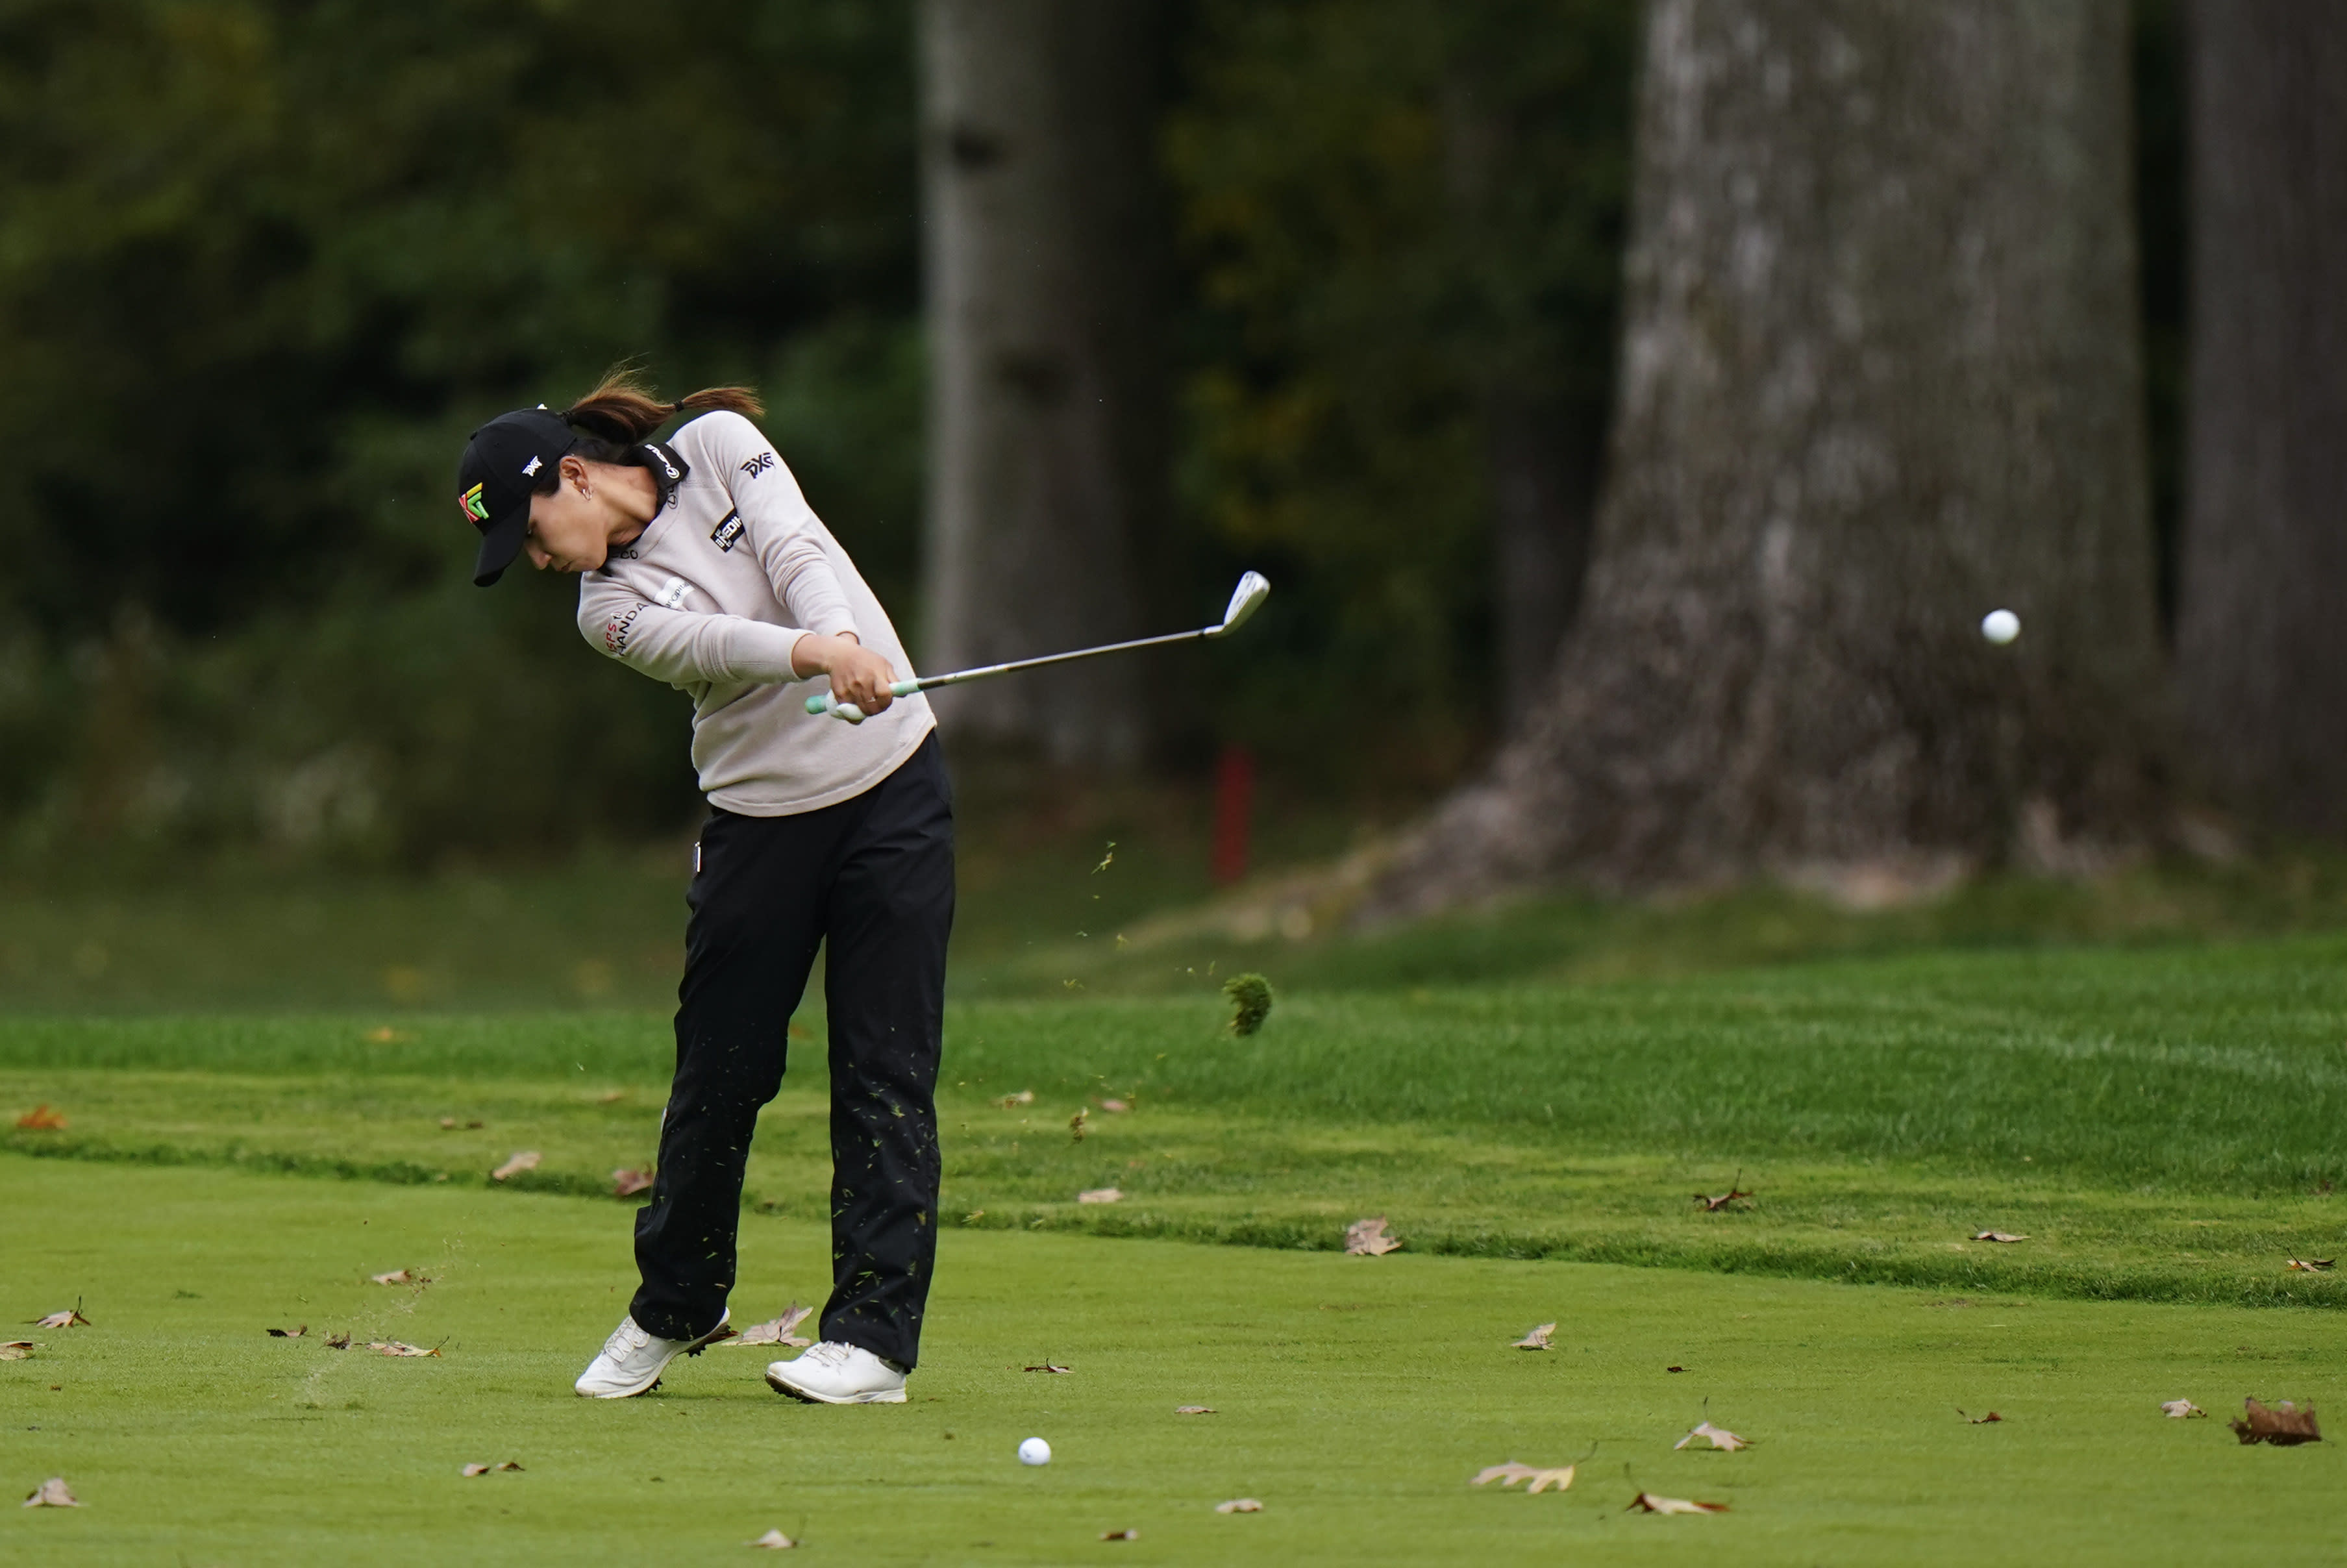 Lydia Ko, of New Zealand, hits from the first fairway during the third round at the KPMG Women's PGA Championship golf tournament at the Aronimink Golf Club, Saturday, Oct. 10, 2020, in Newtown Square, Pa. (AP Photo/Matt Slocum)